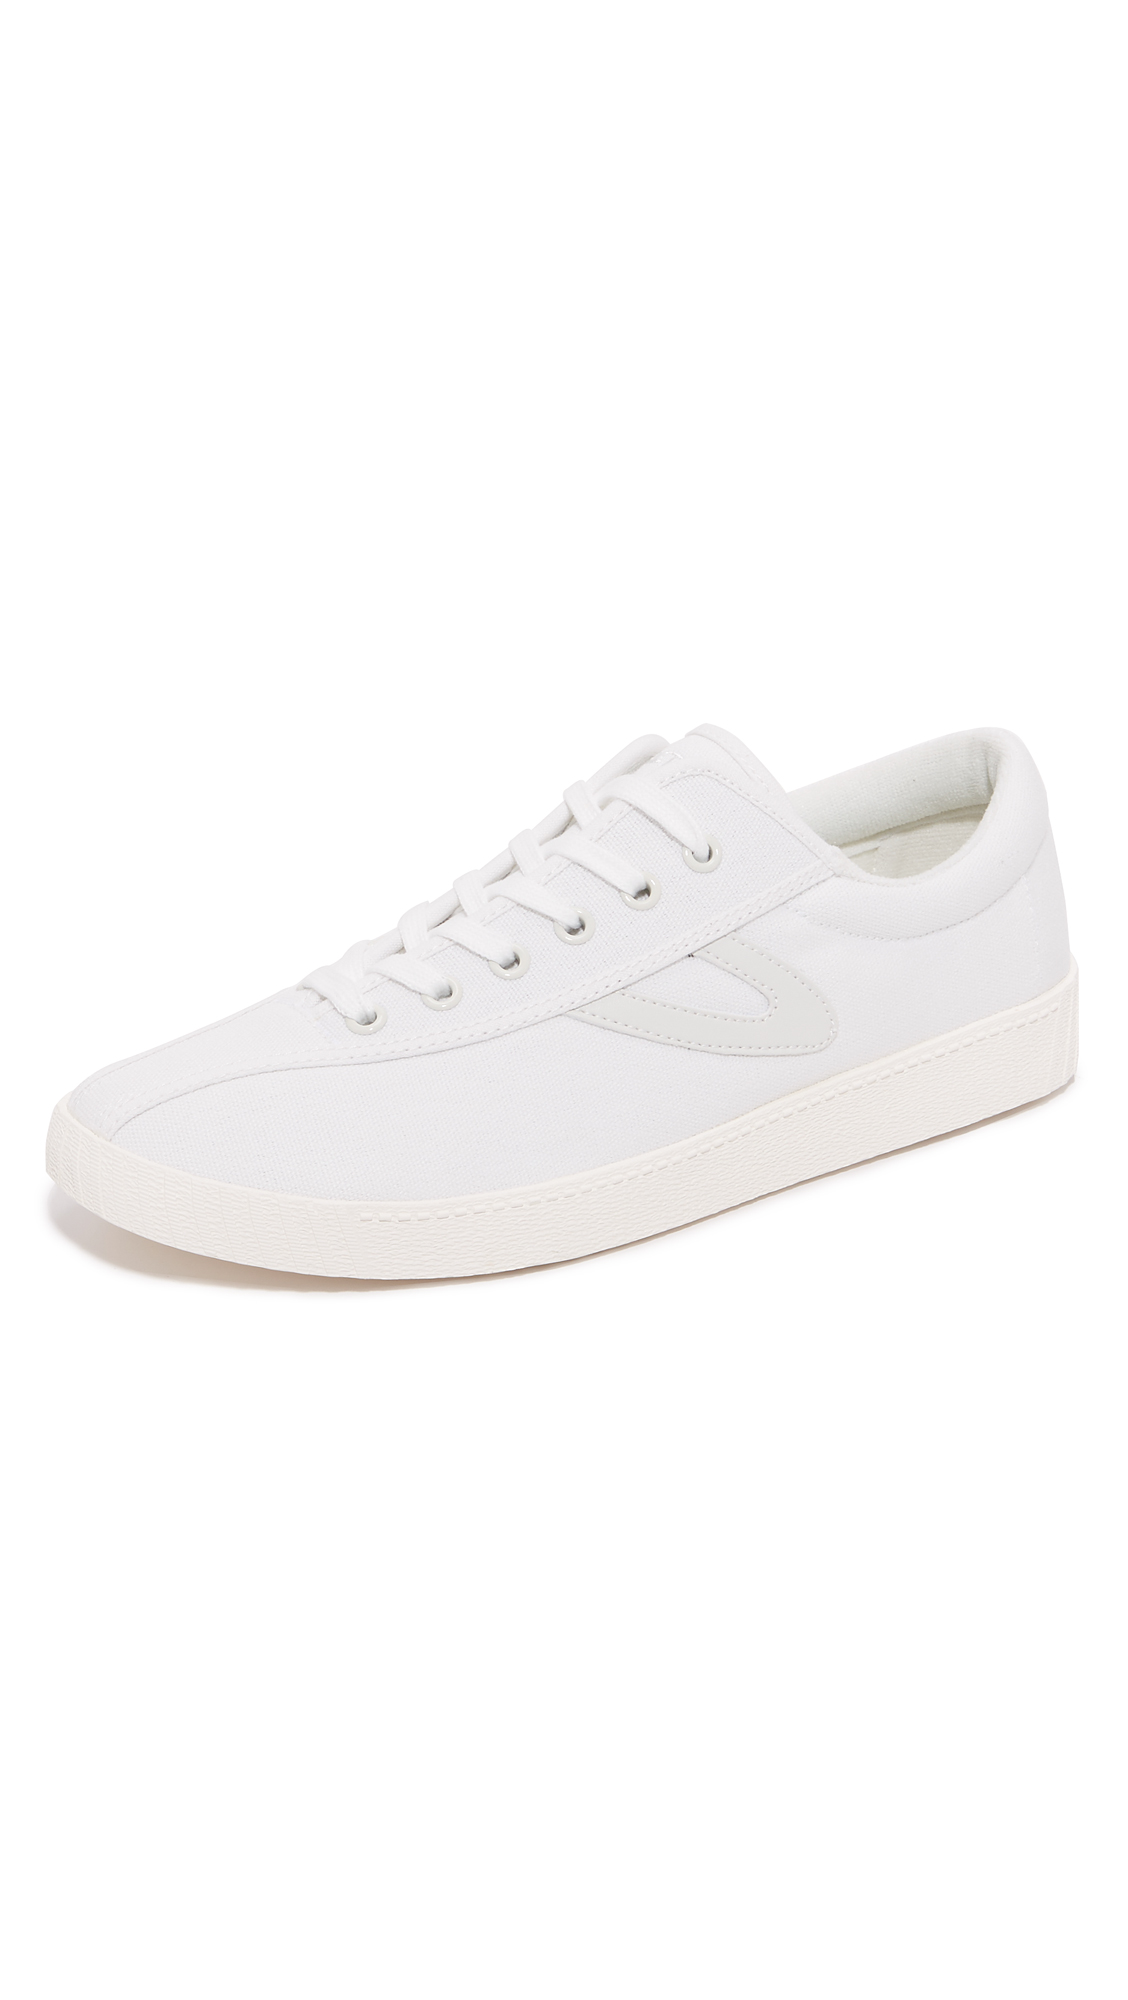 TRETORN Men'S Nylite Plus Lace Up Sneakers in White